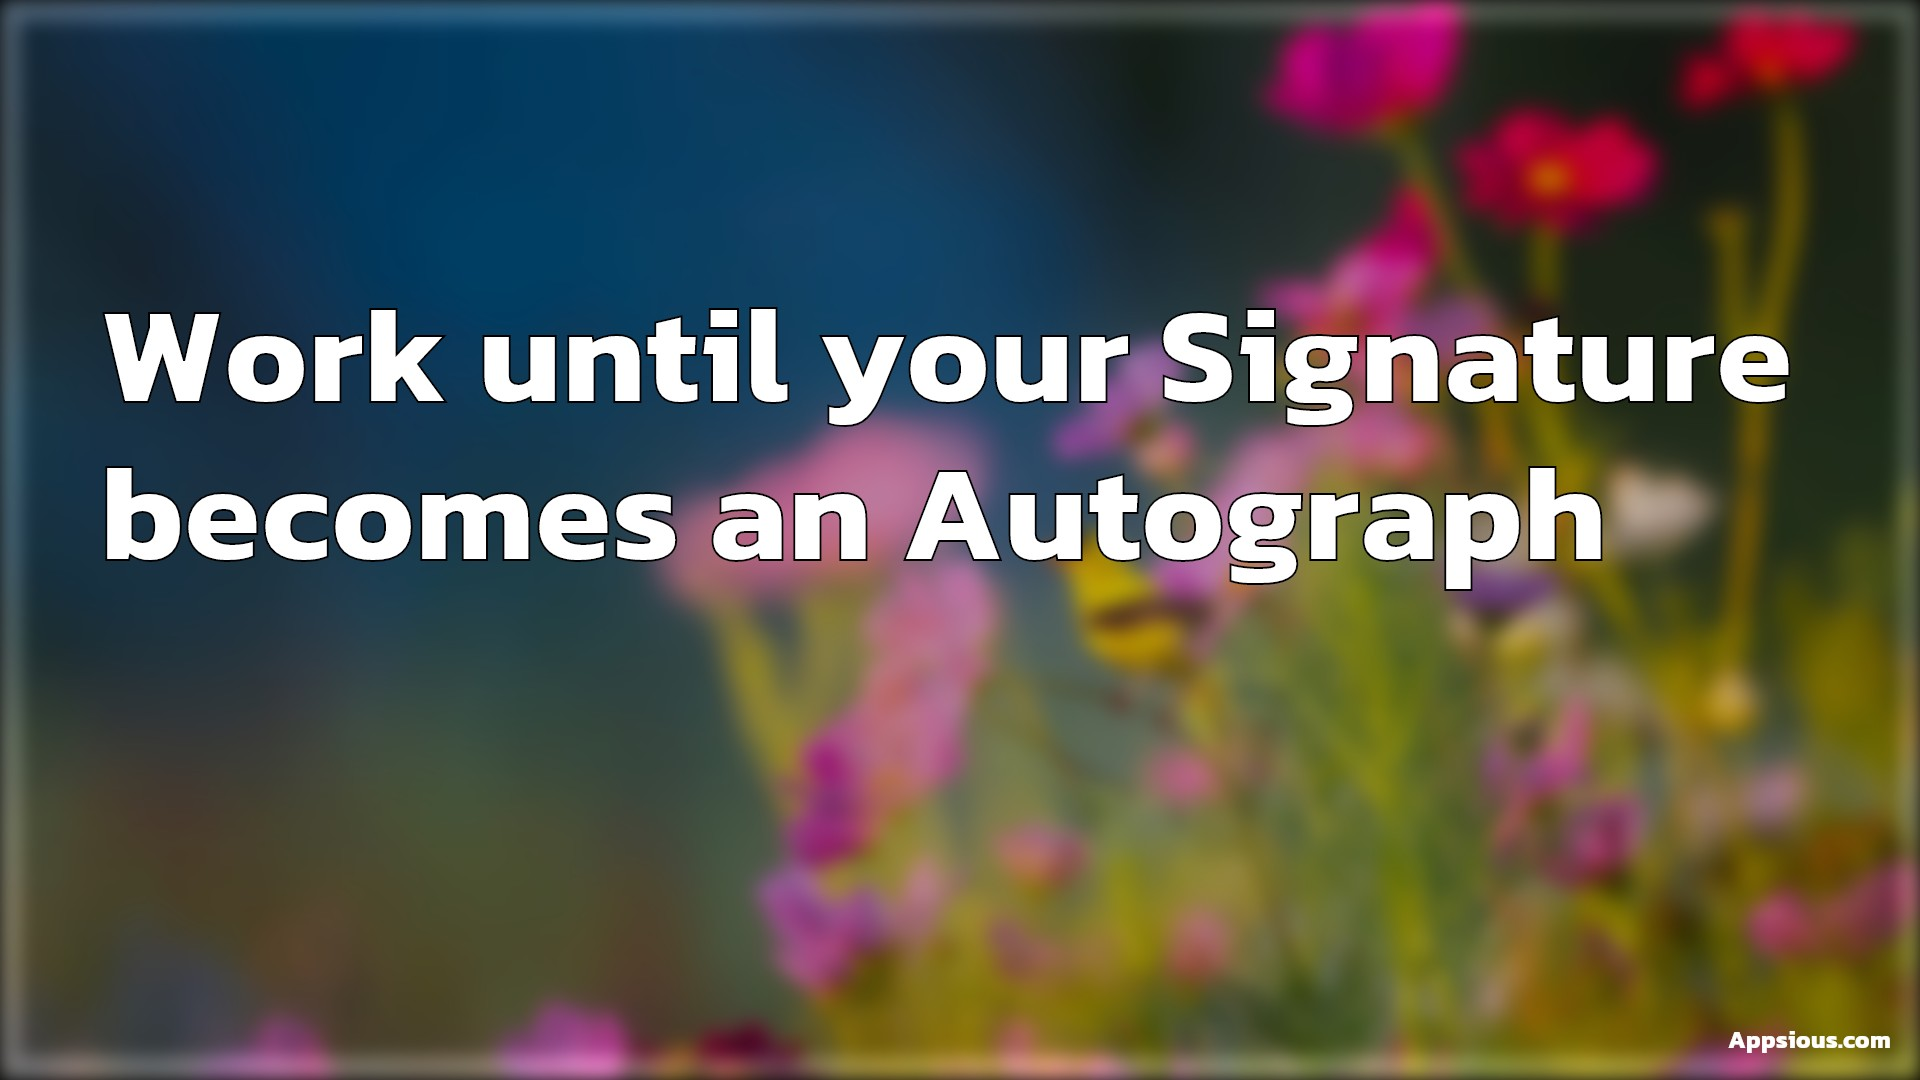 Work until your Signature becomes an Autograph.